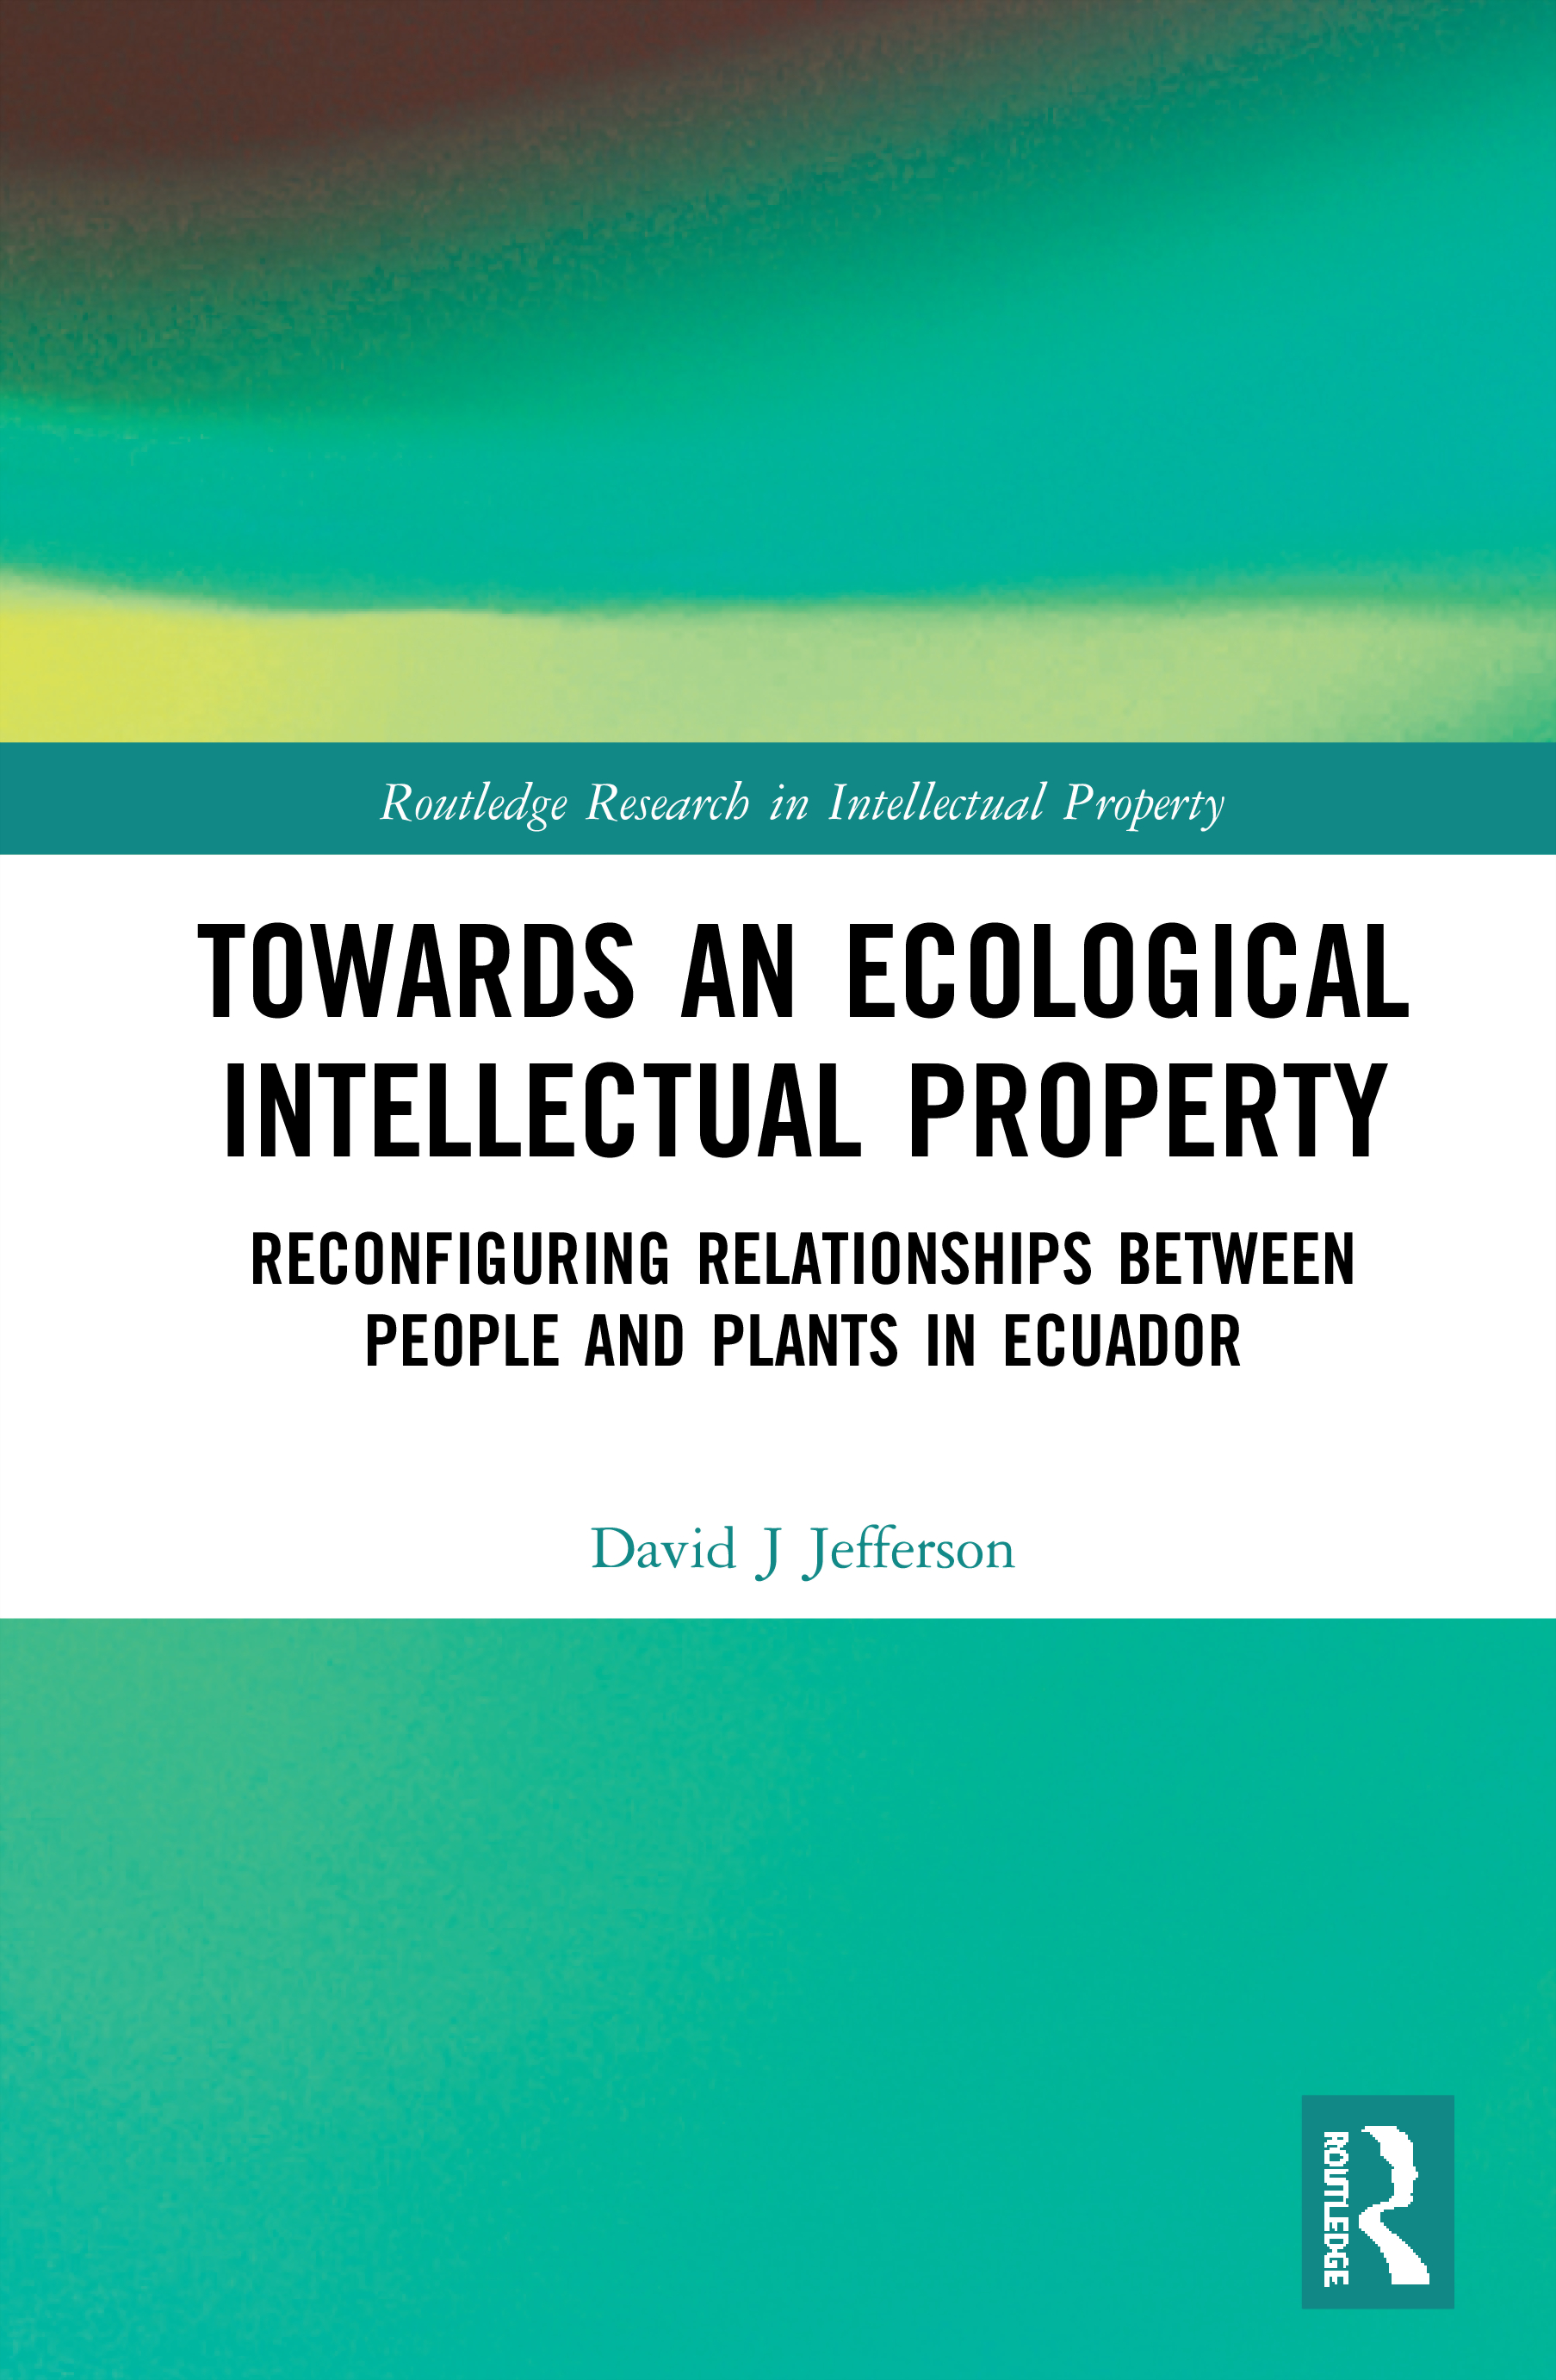 Towards an Ecological Intellectual Property: Reconfiguring Relationships Between People and Plants in Ecuador book cover